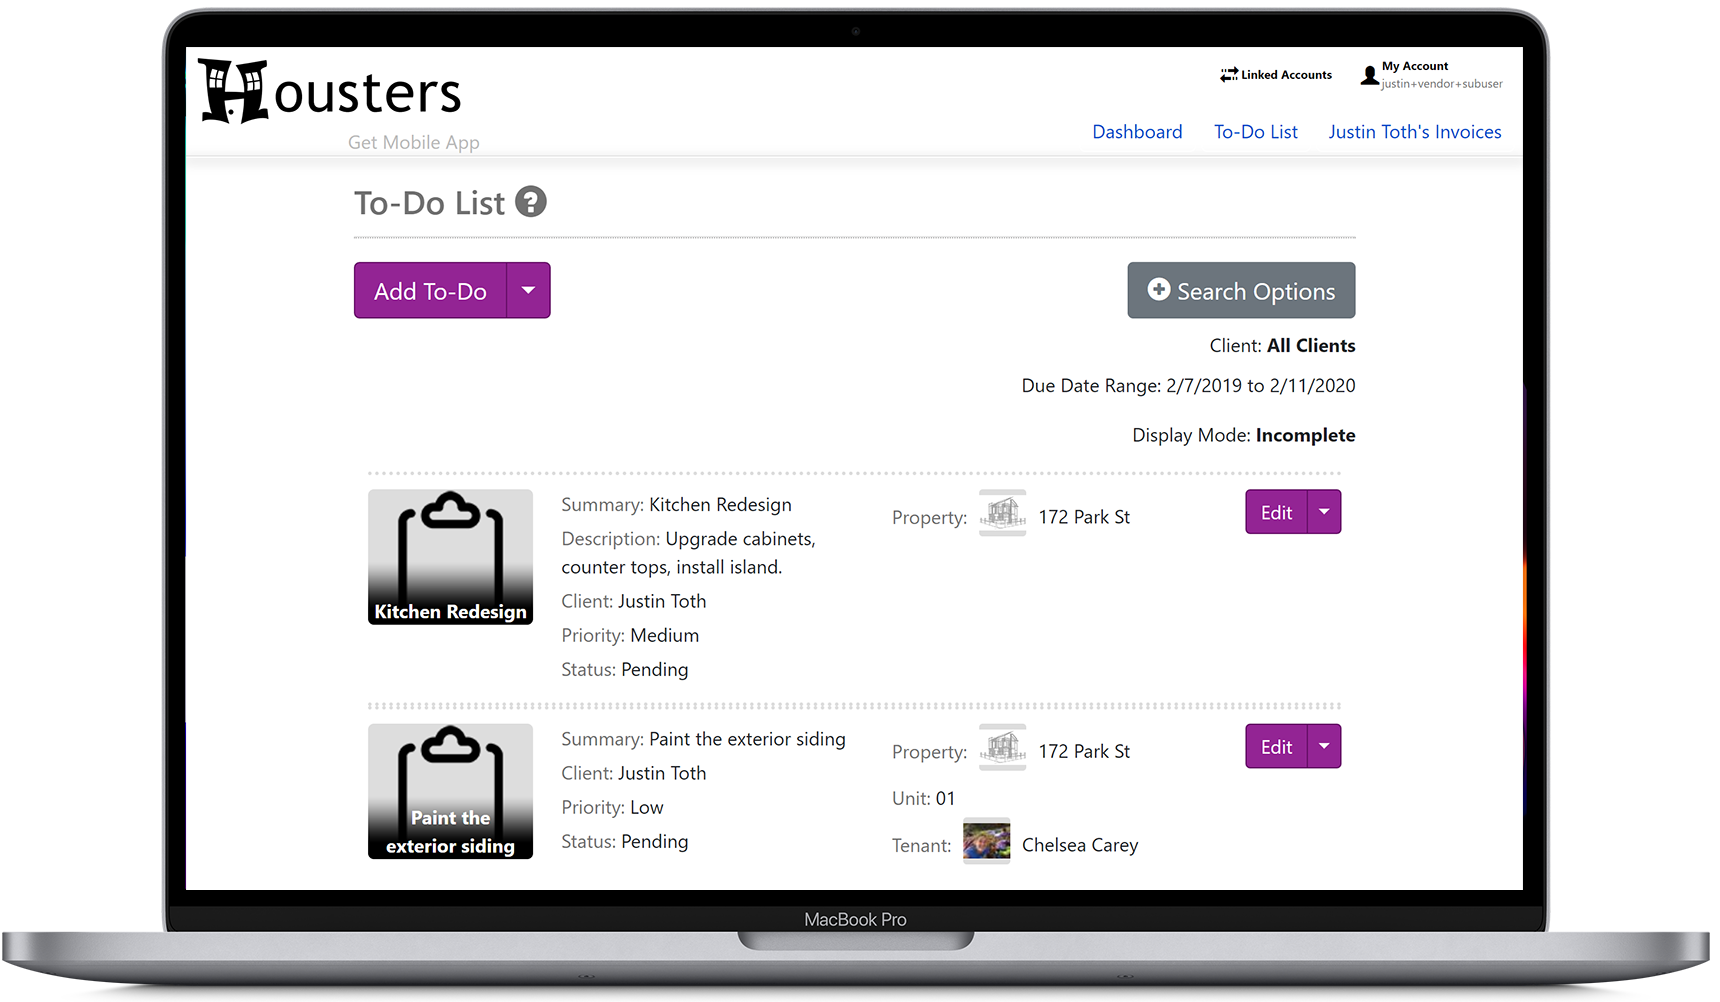 Contractors can view to-do list tasks shared with them by their landlord and property manager clients